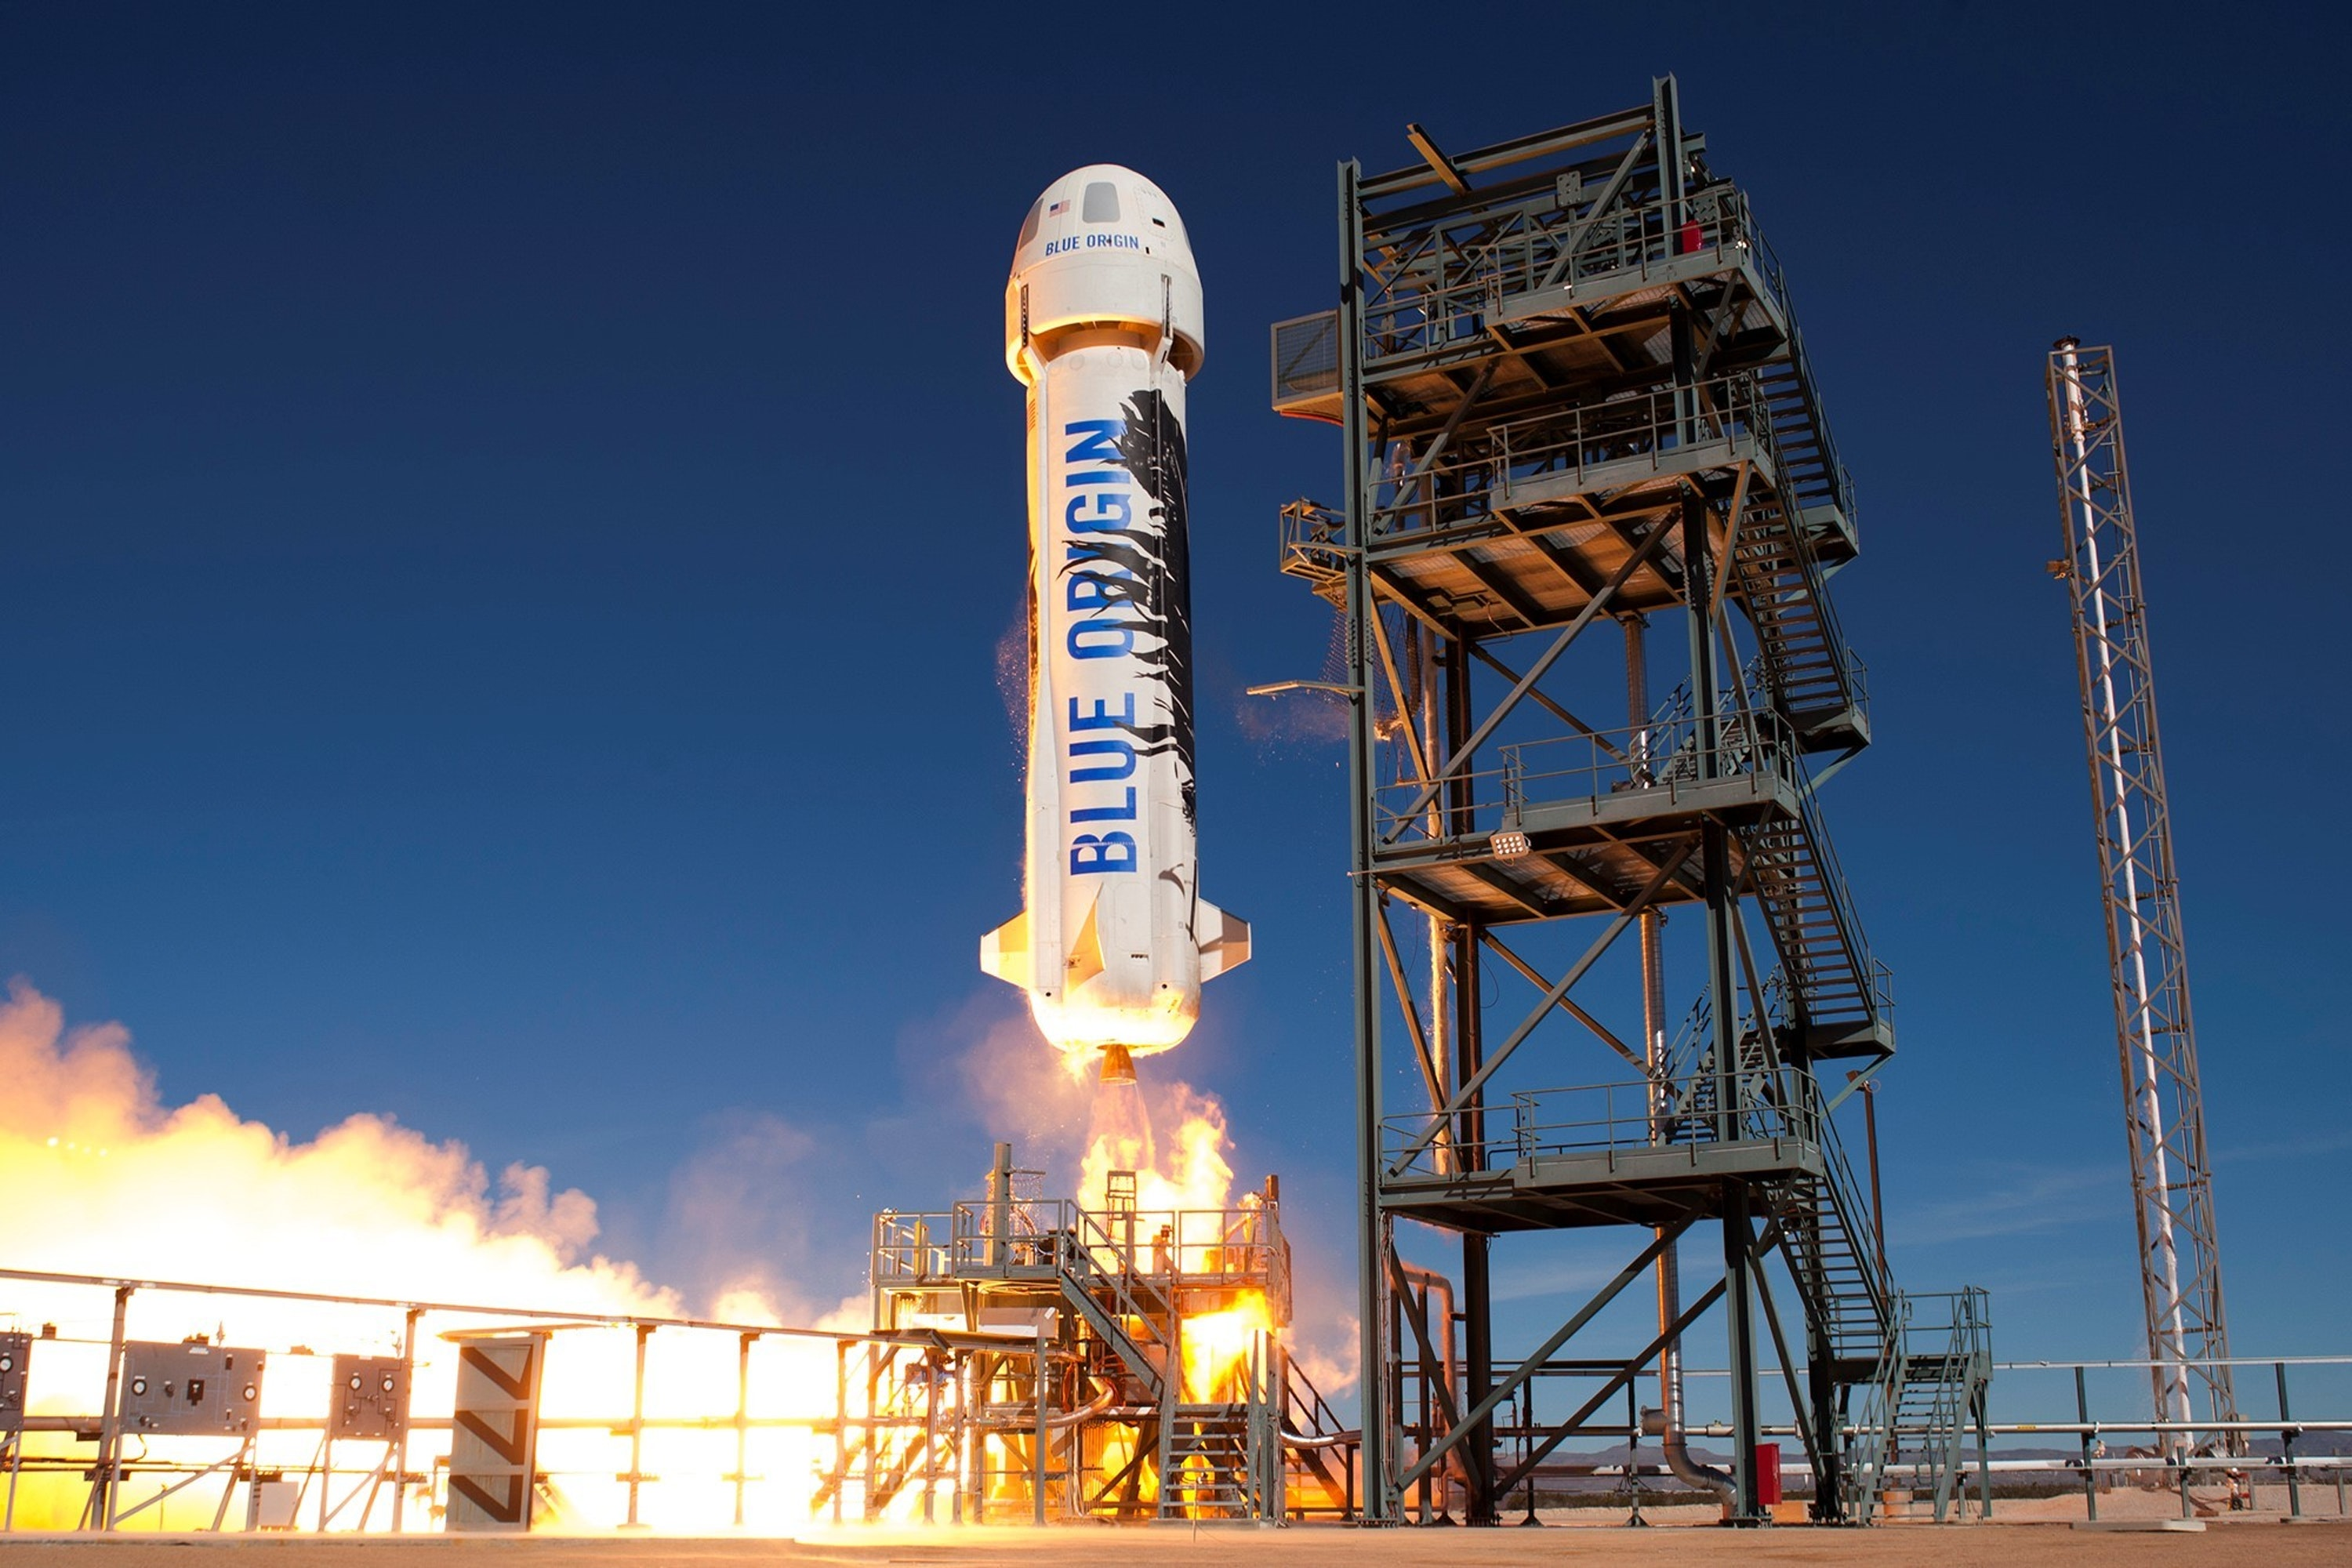 Blue Origin's New Shepard rocket with the crew capsule during an experimental test flight earlier this year.